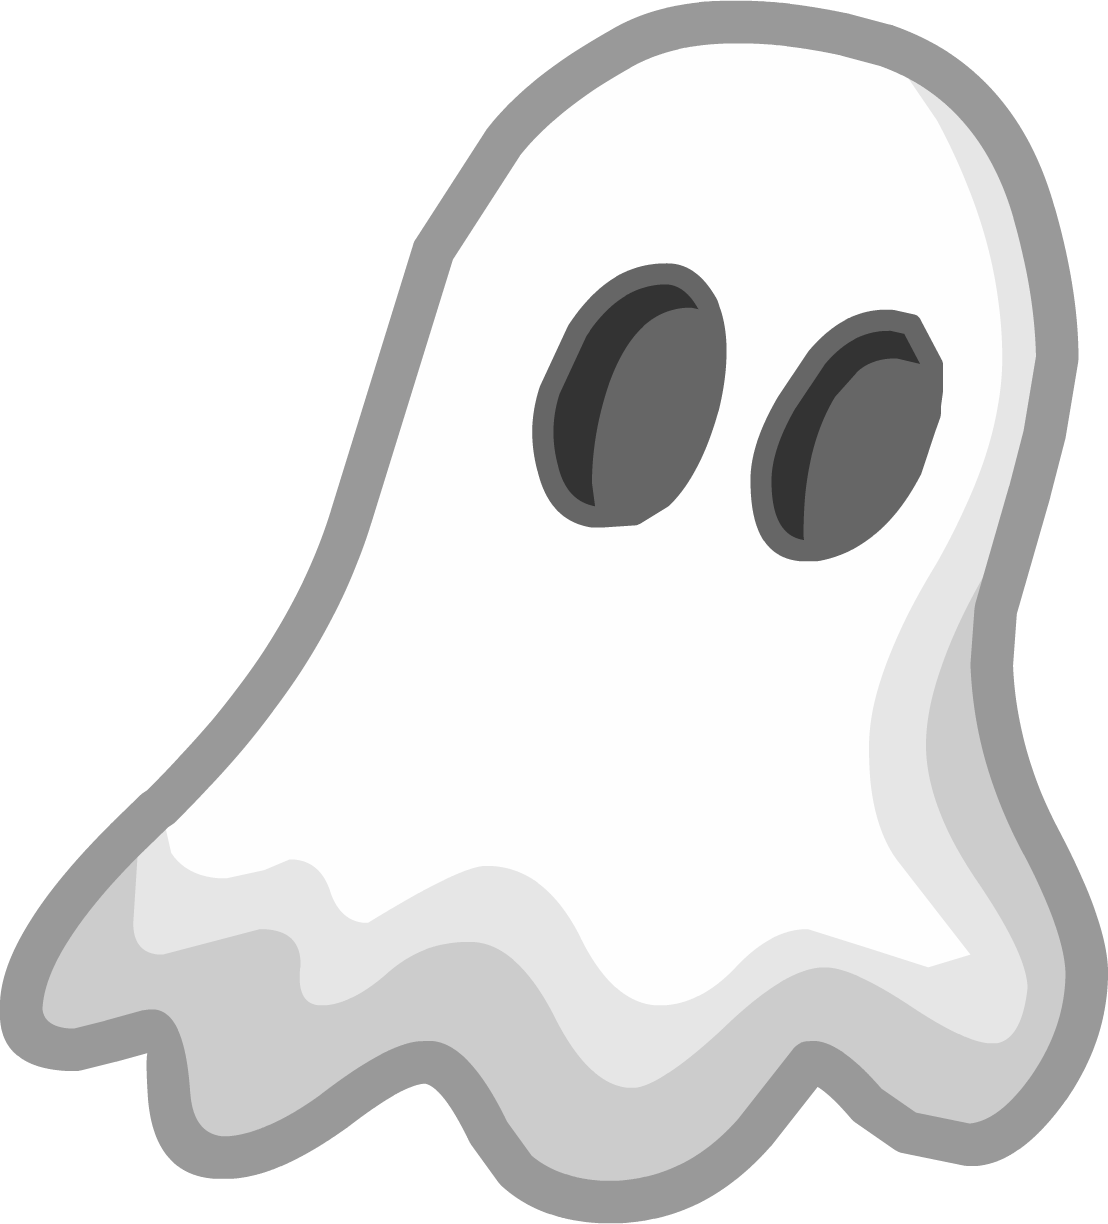 Ghost PNG - 2749